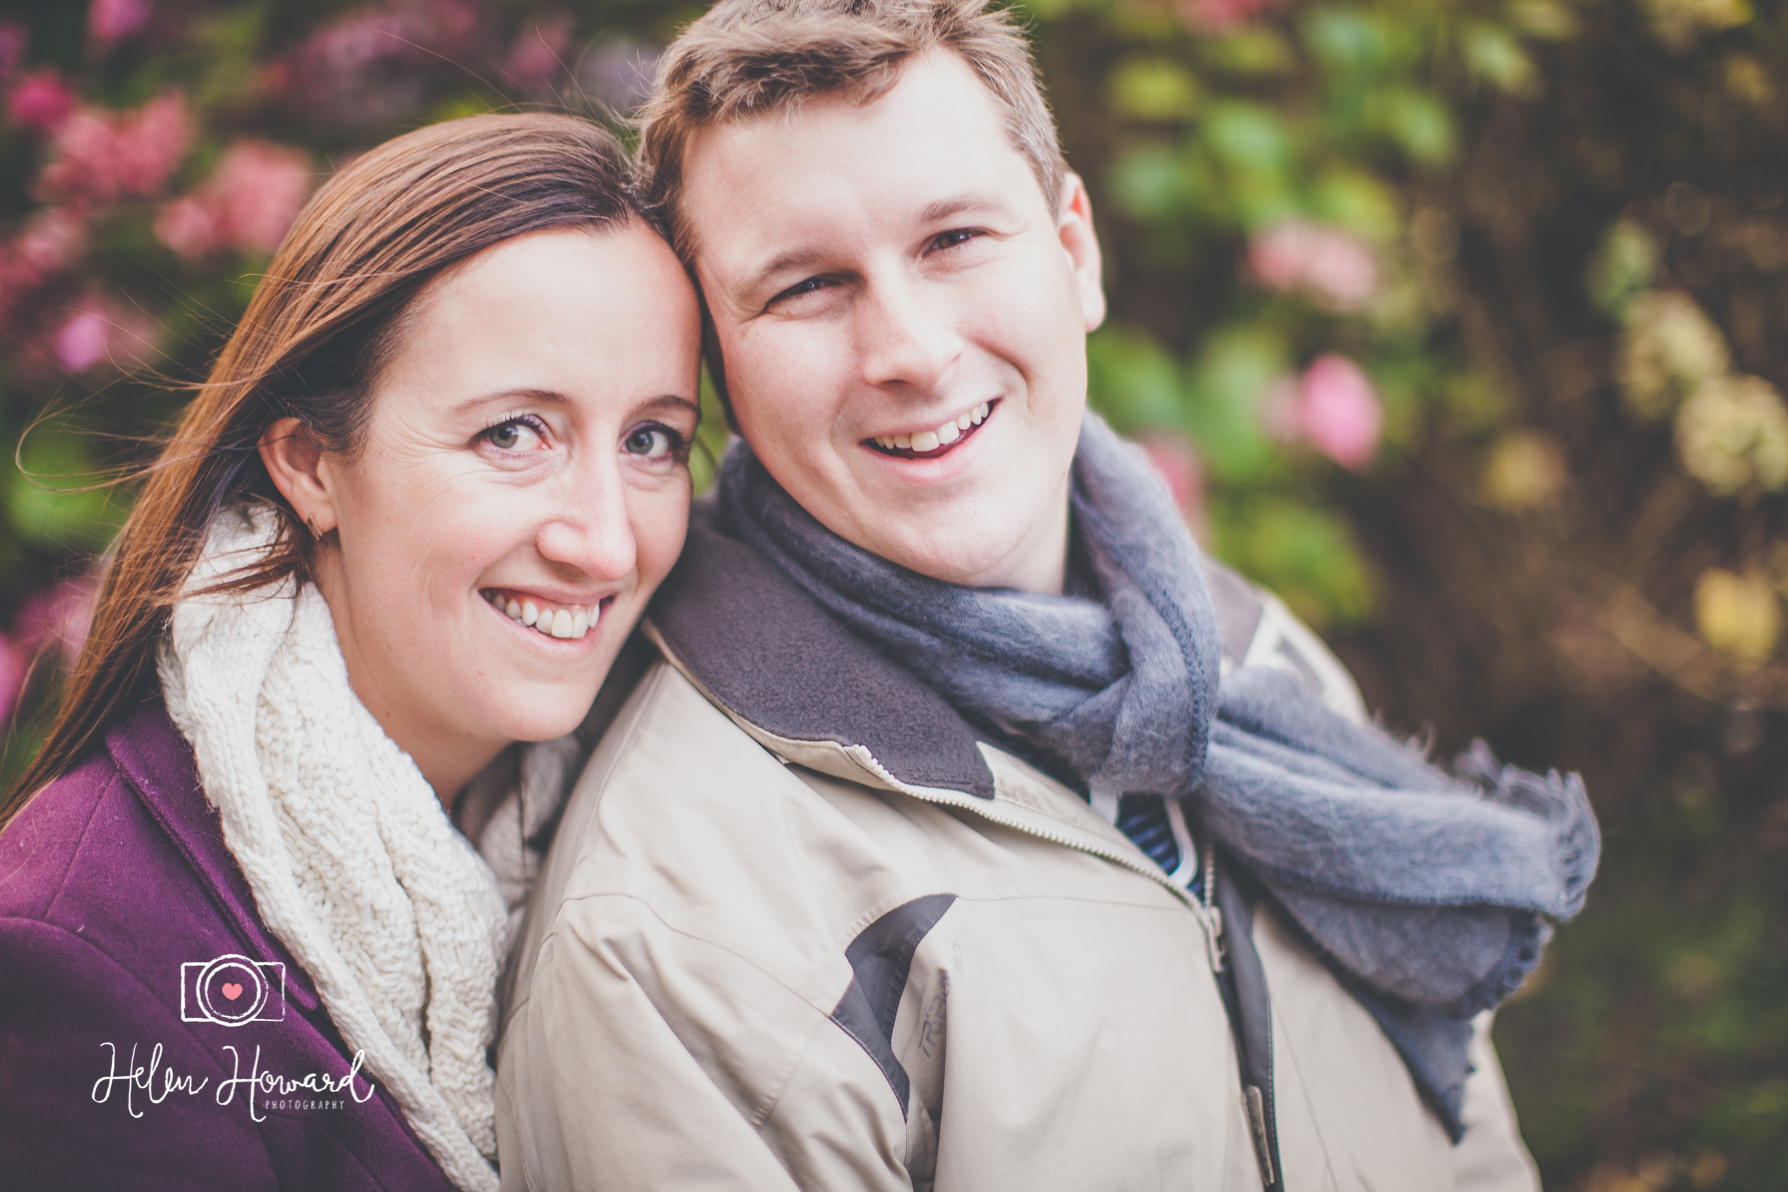 Engagement Shoot at Shrigley Hall by Helen Howard Photography-24.jpg